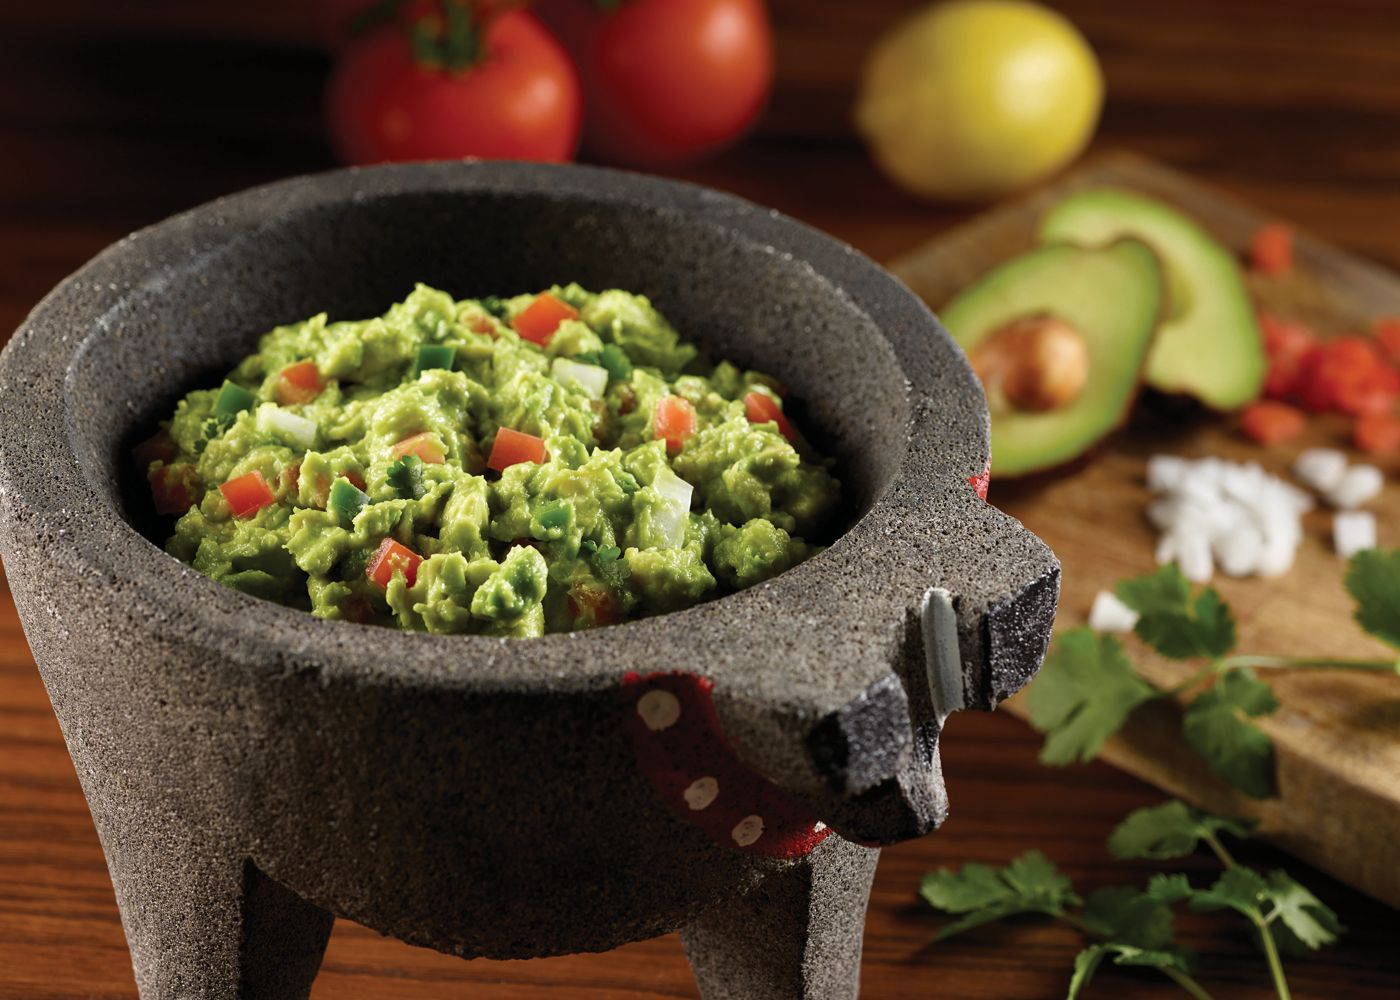 During Hispanic Heritage Month, Celebrate National Guacamole Day at Uncle Julio's